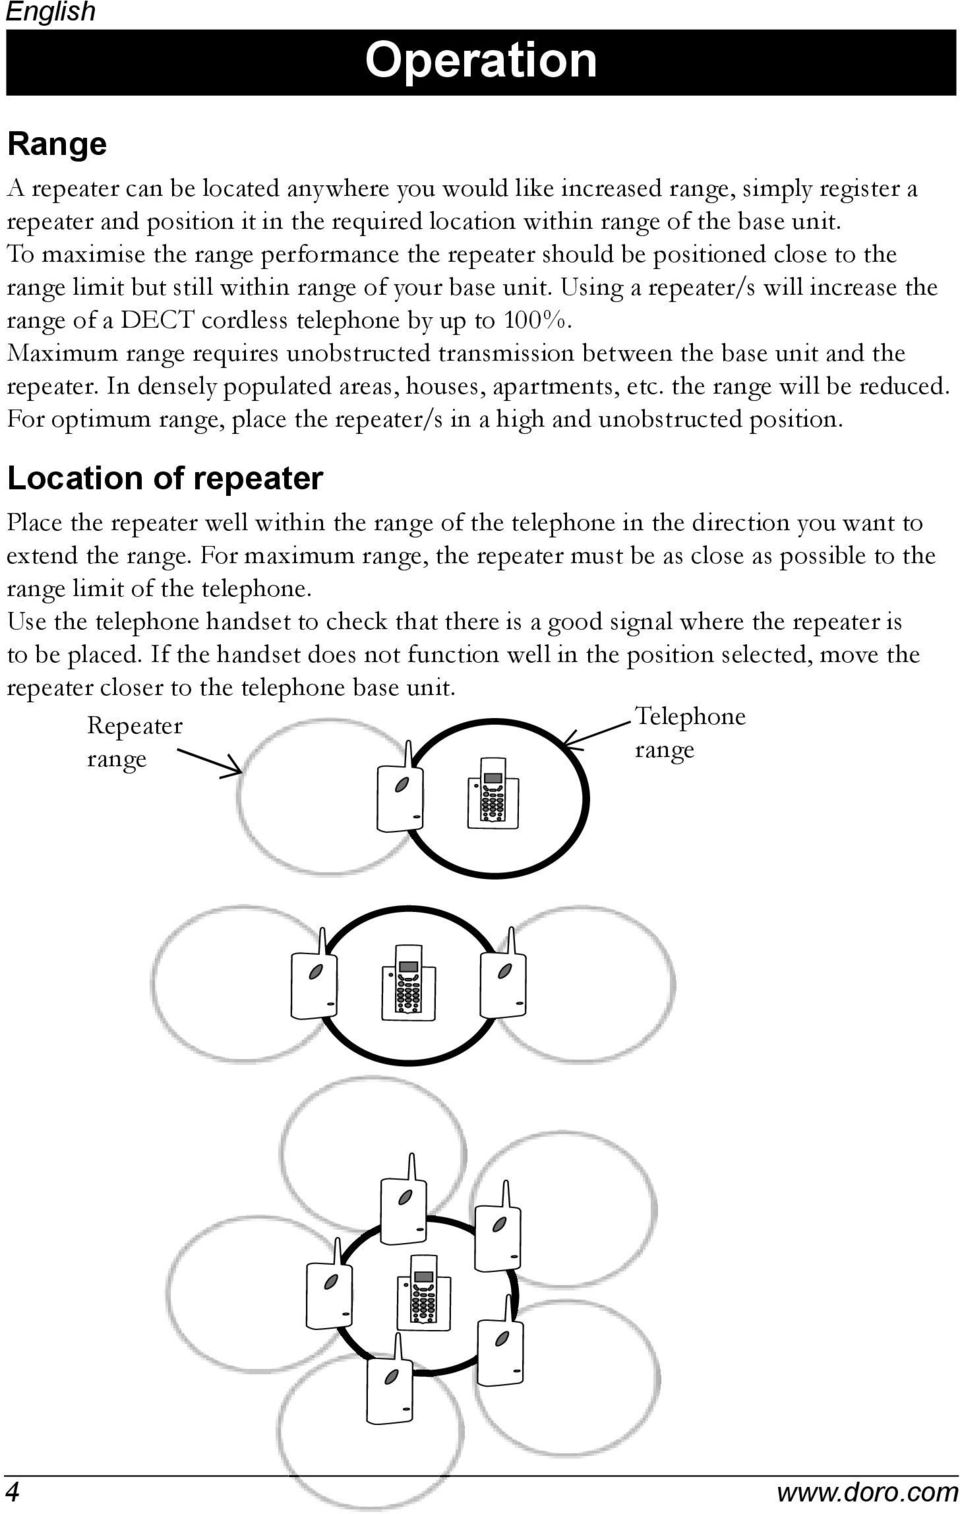 Using a repeater/s will increase the range of a DECT cordless telephone by up to 100%. Maximum range requires unobstructed transmission between the base unit and the repeater.